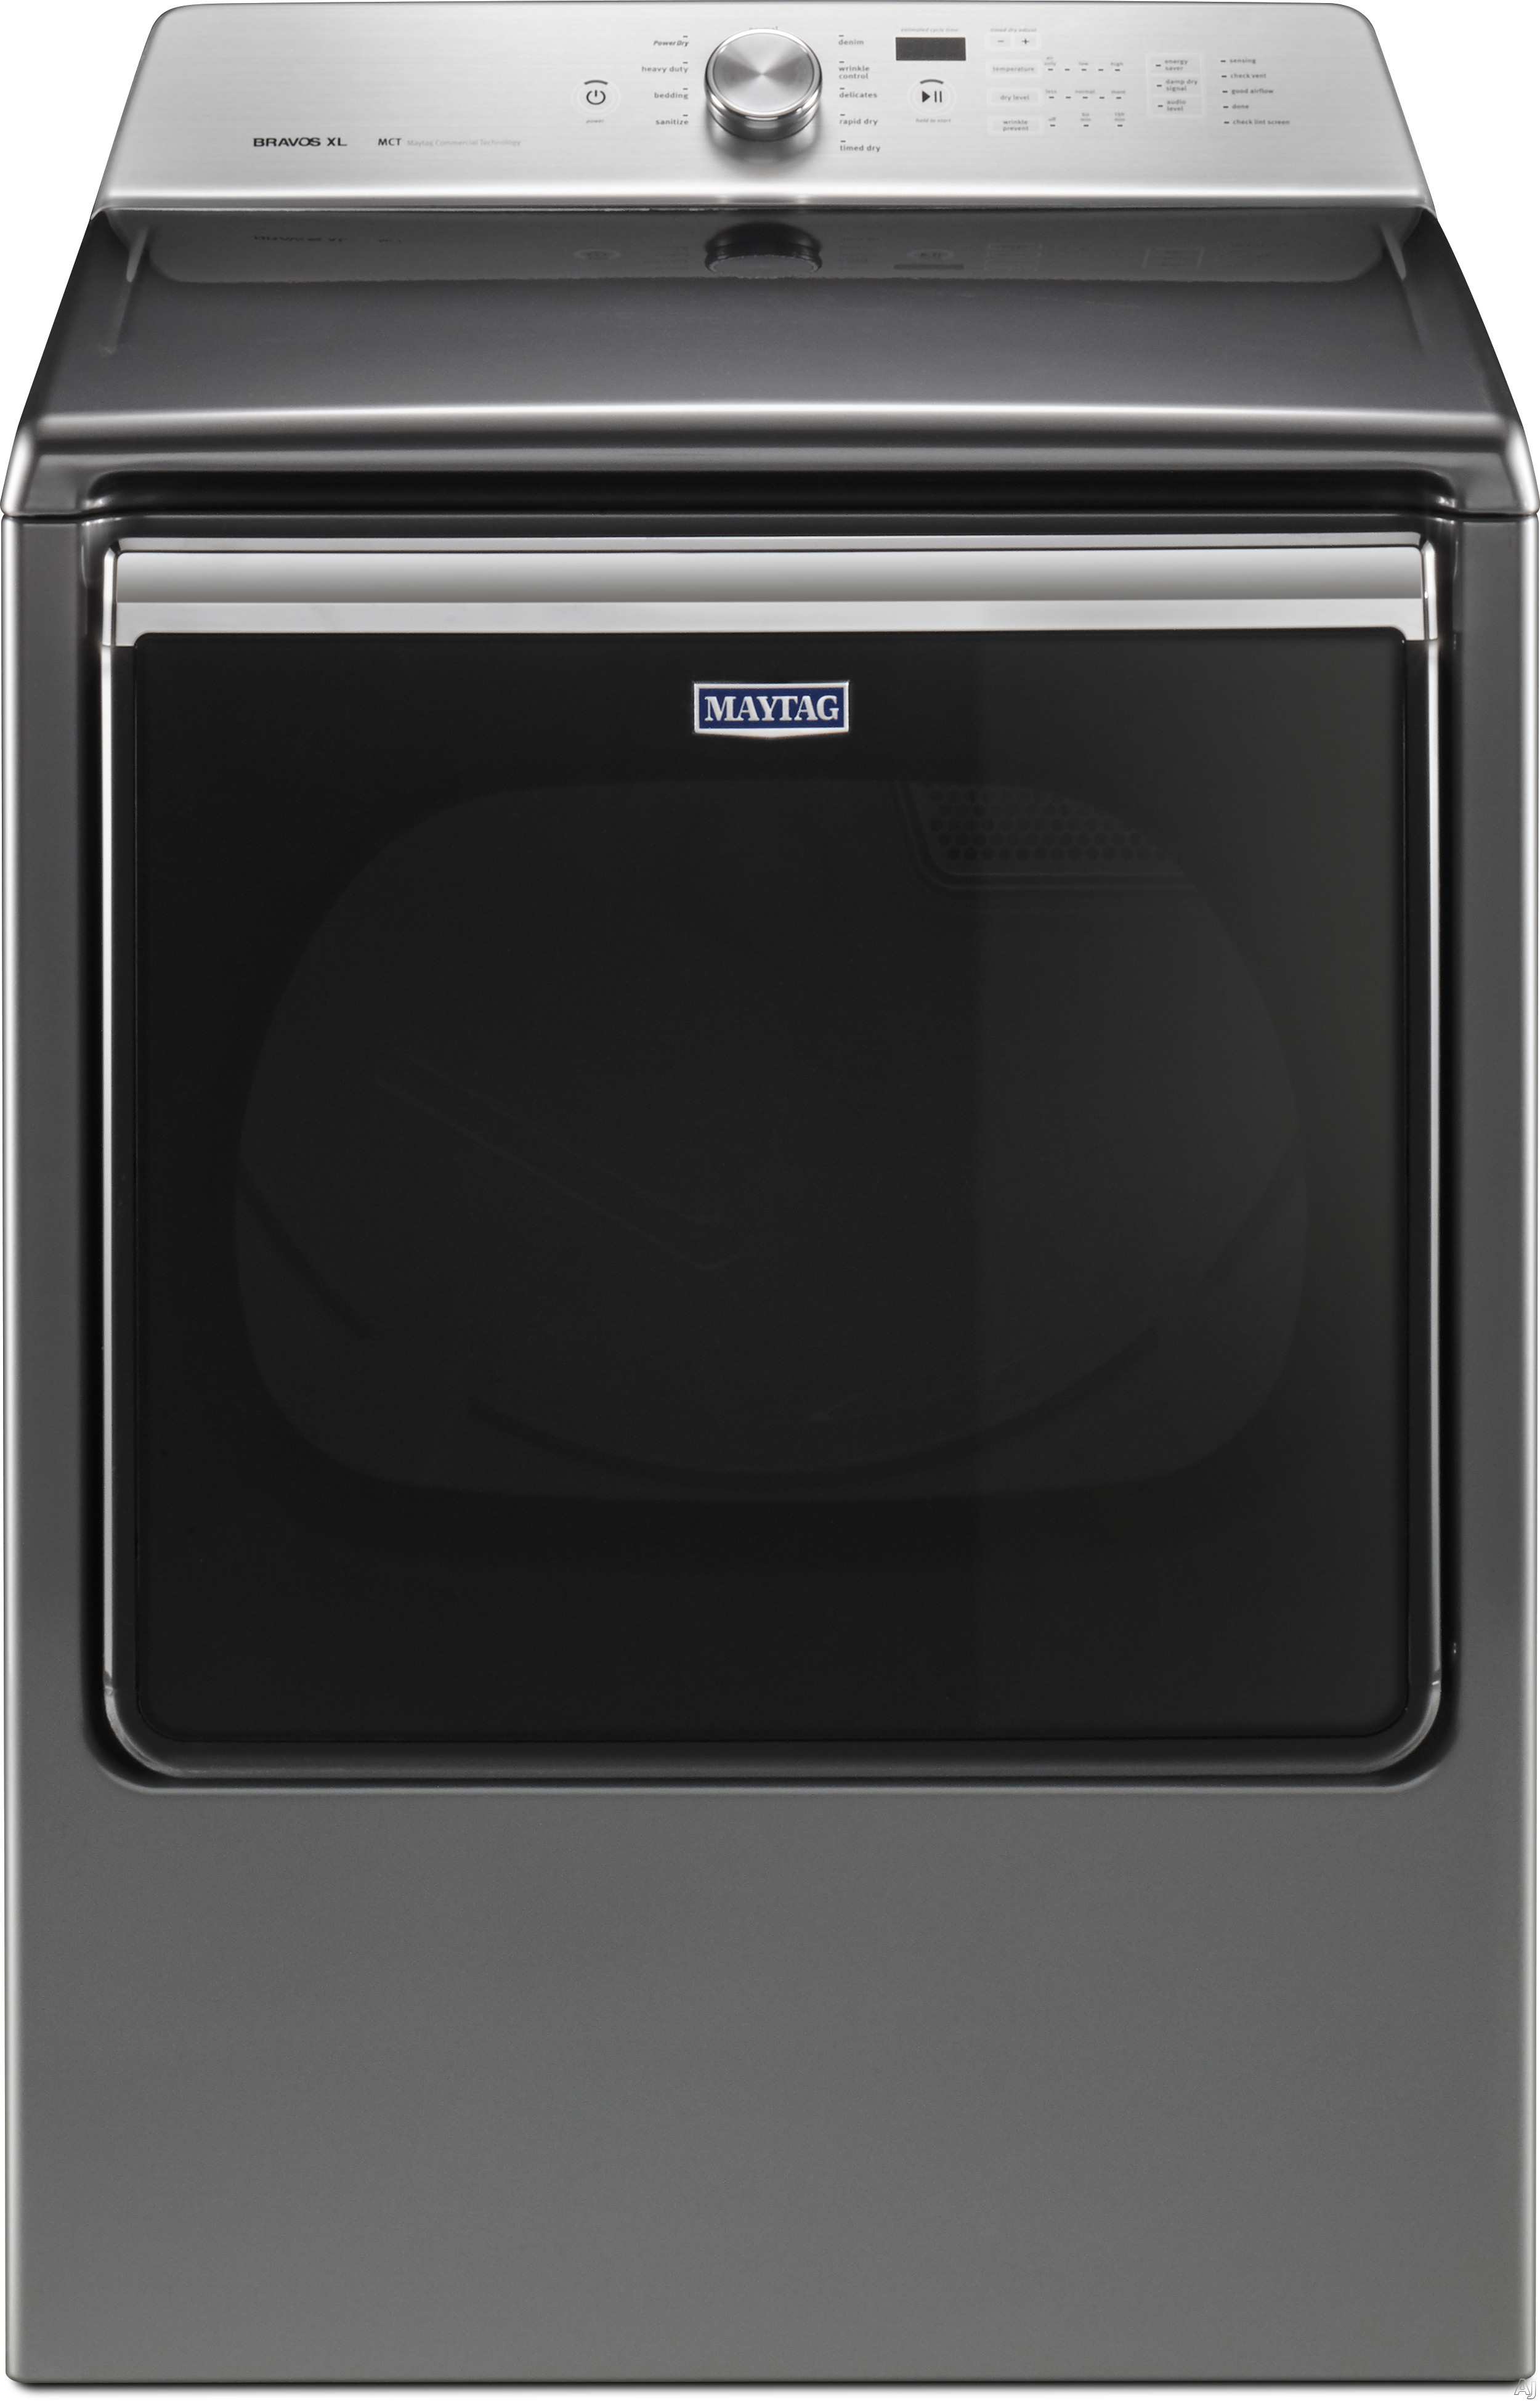 Maytag MEDB835D 29 Inch Electric Dryer with PowerDry Cycle, Advanced Moisture Sensing, Extra Interior Fin, Rapid Dry Cycle, Sanitize Cycle, Wrinkle Prevent Option, LED Drum Light, Audio Level Option and 8.8 cu. ft.